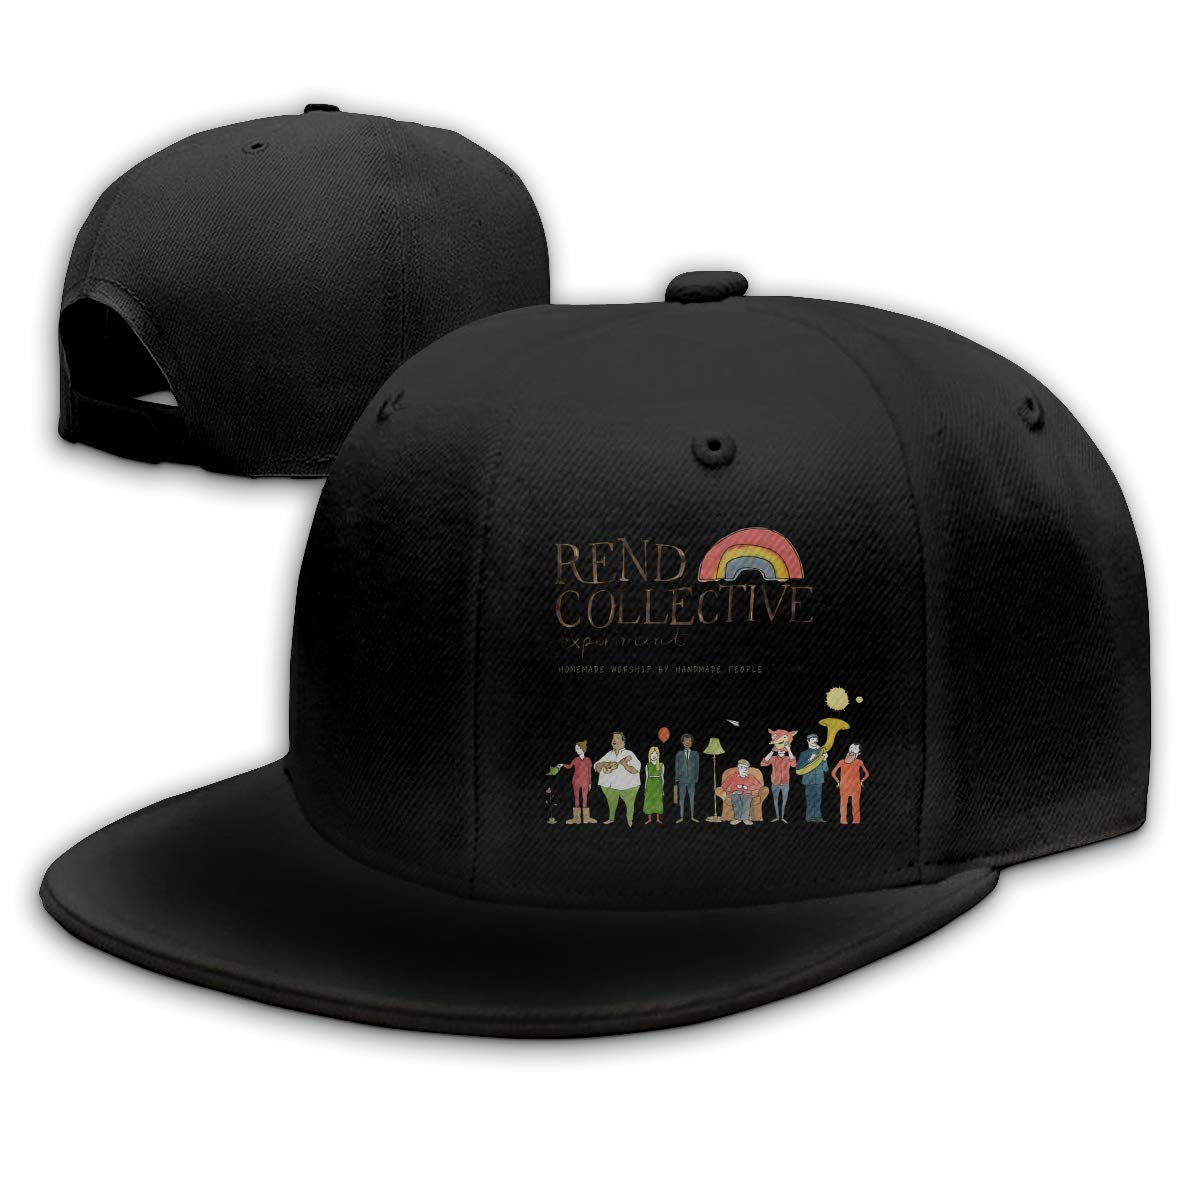 36d3d4804 SUA6SJ Rend Collective Personality Trend Baseball Cap for ...